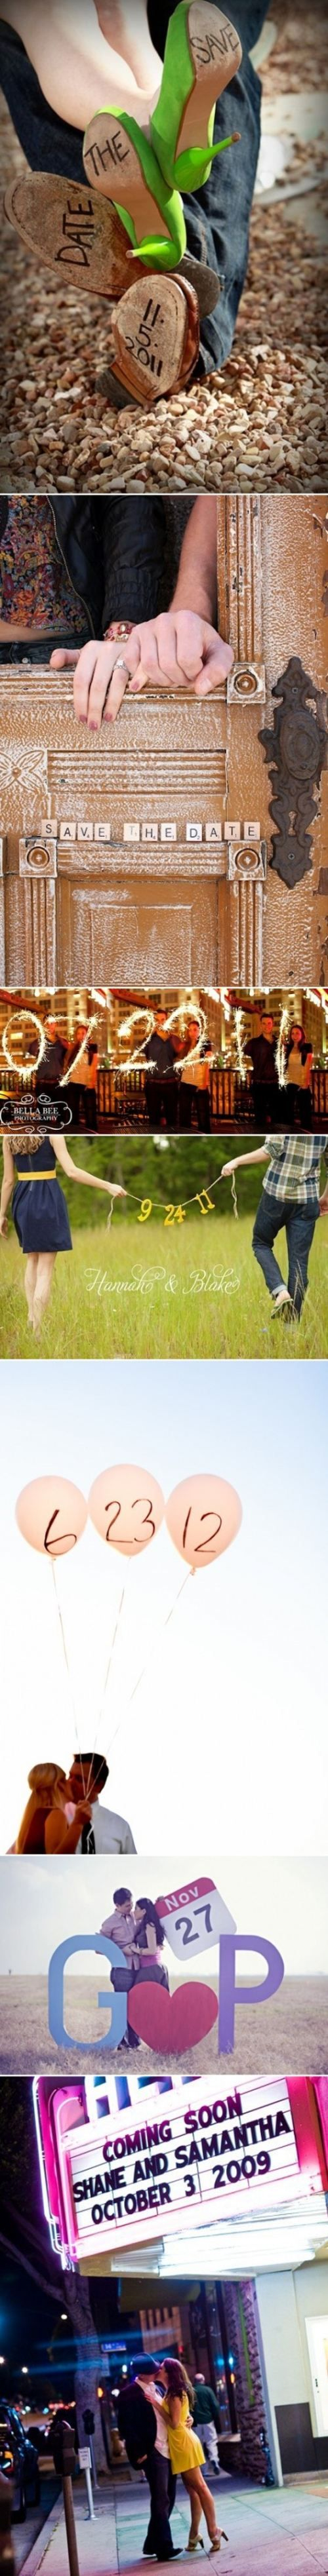 save the date ideas @Imke Vannuffelen did the same thing but with 'I do' under her shoes! LOVED IT!